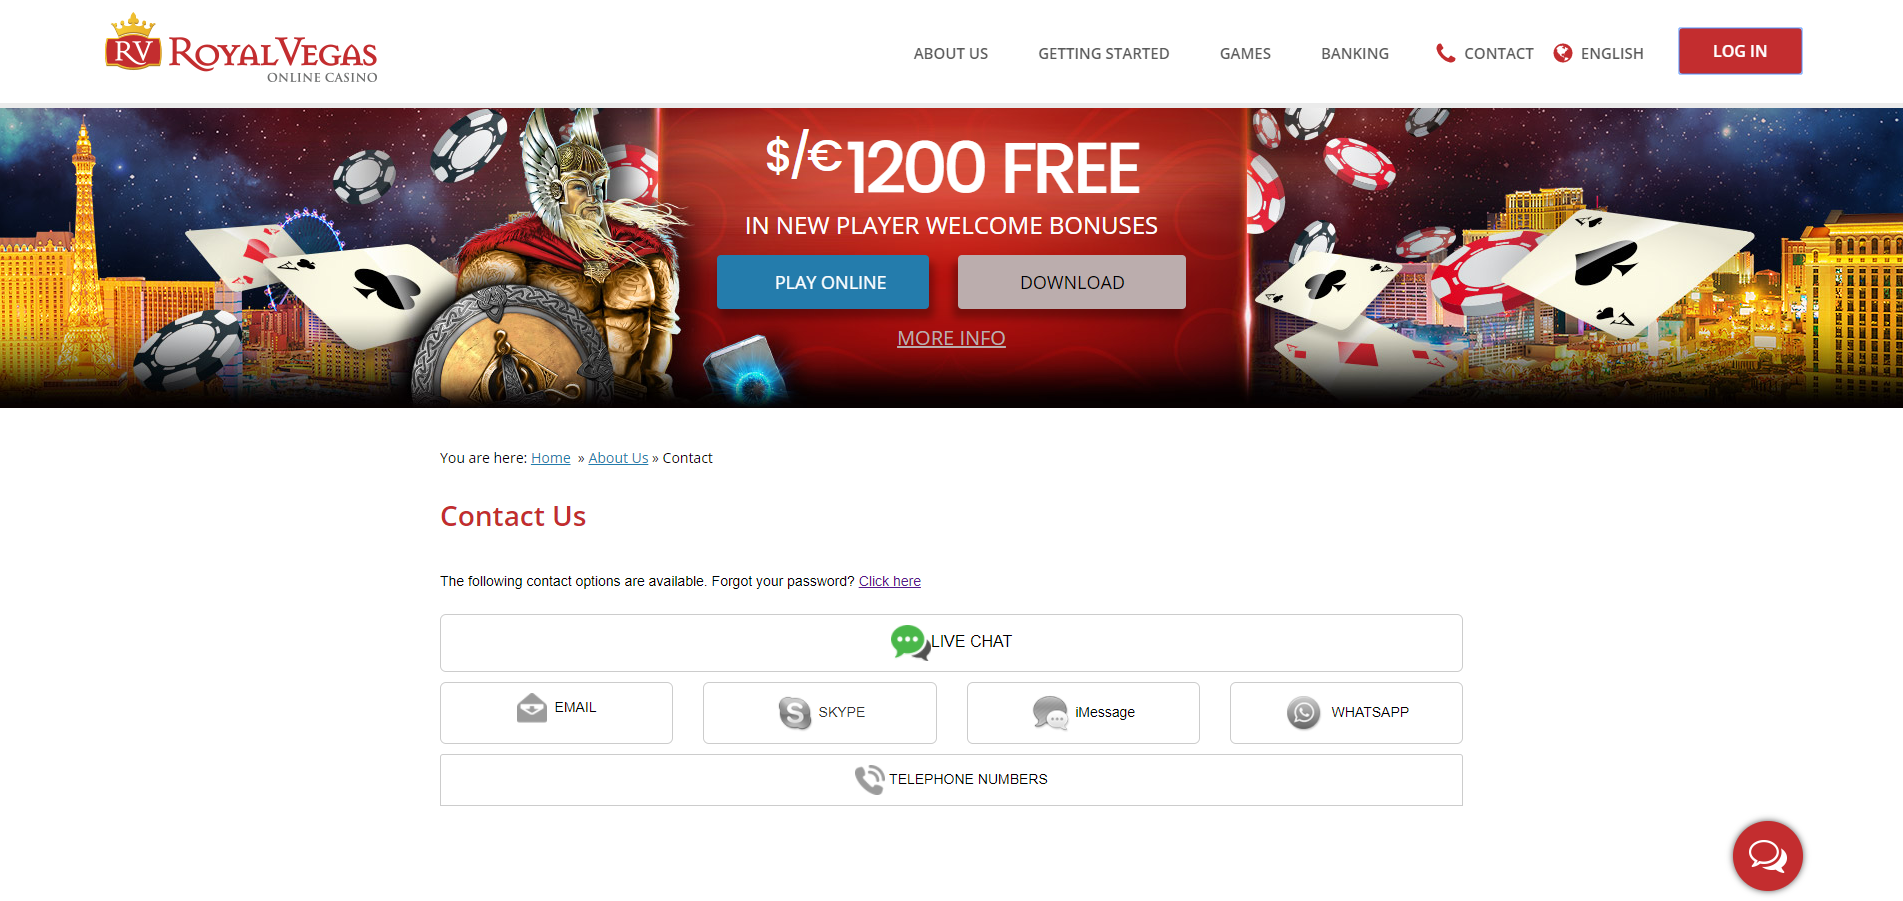 Bob Casino Online Review With Promotions & Bonuses